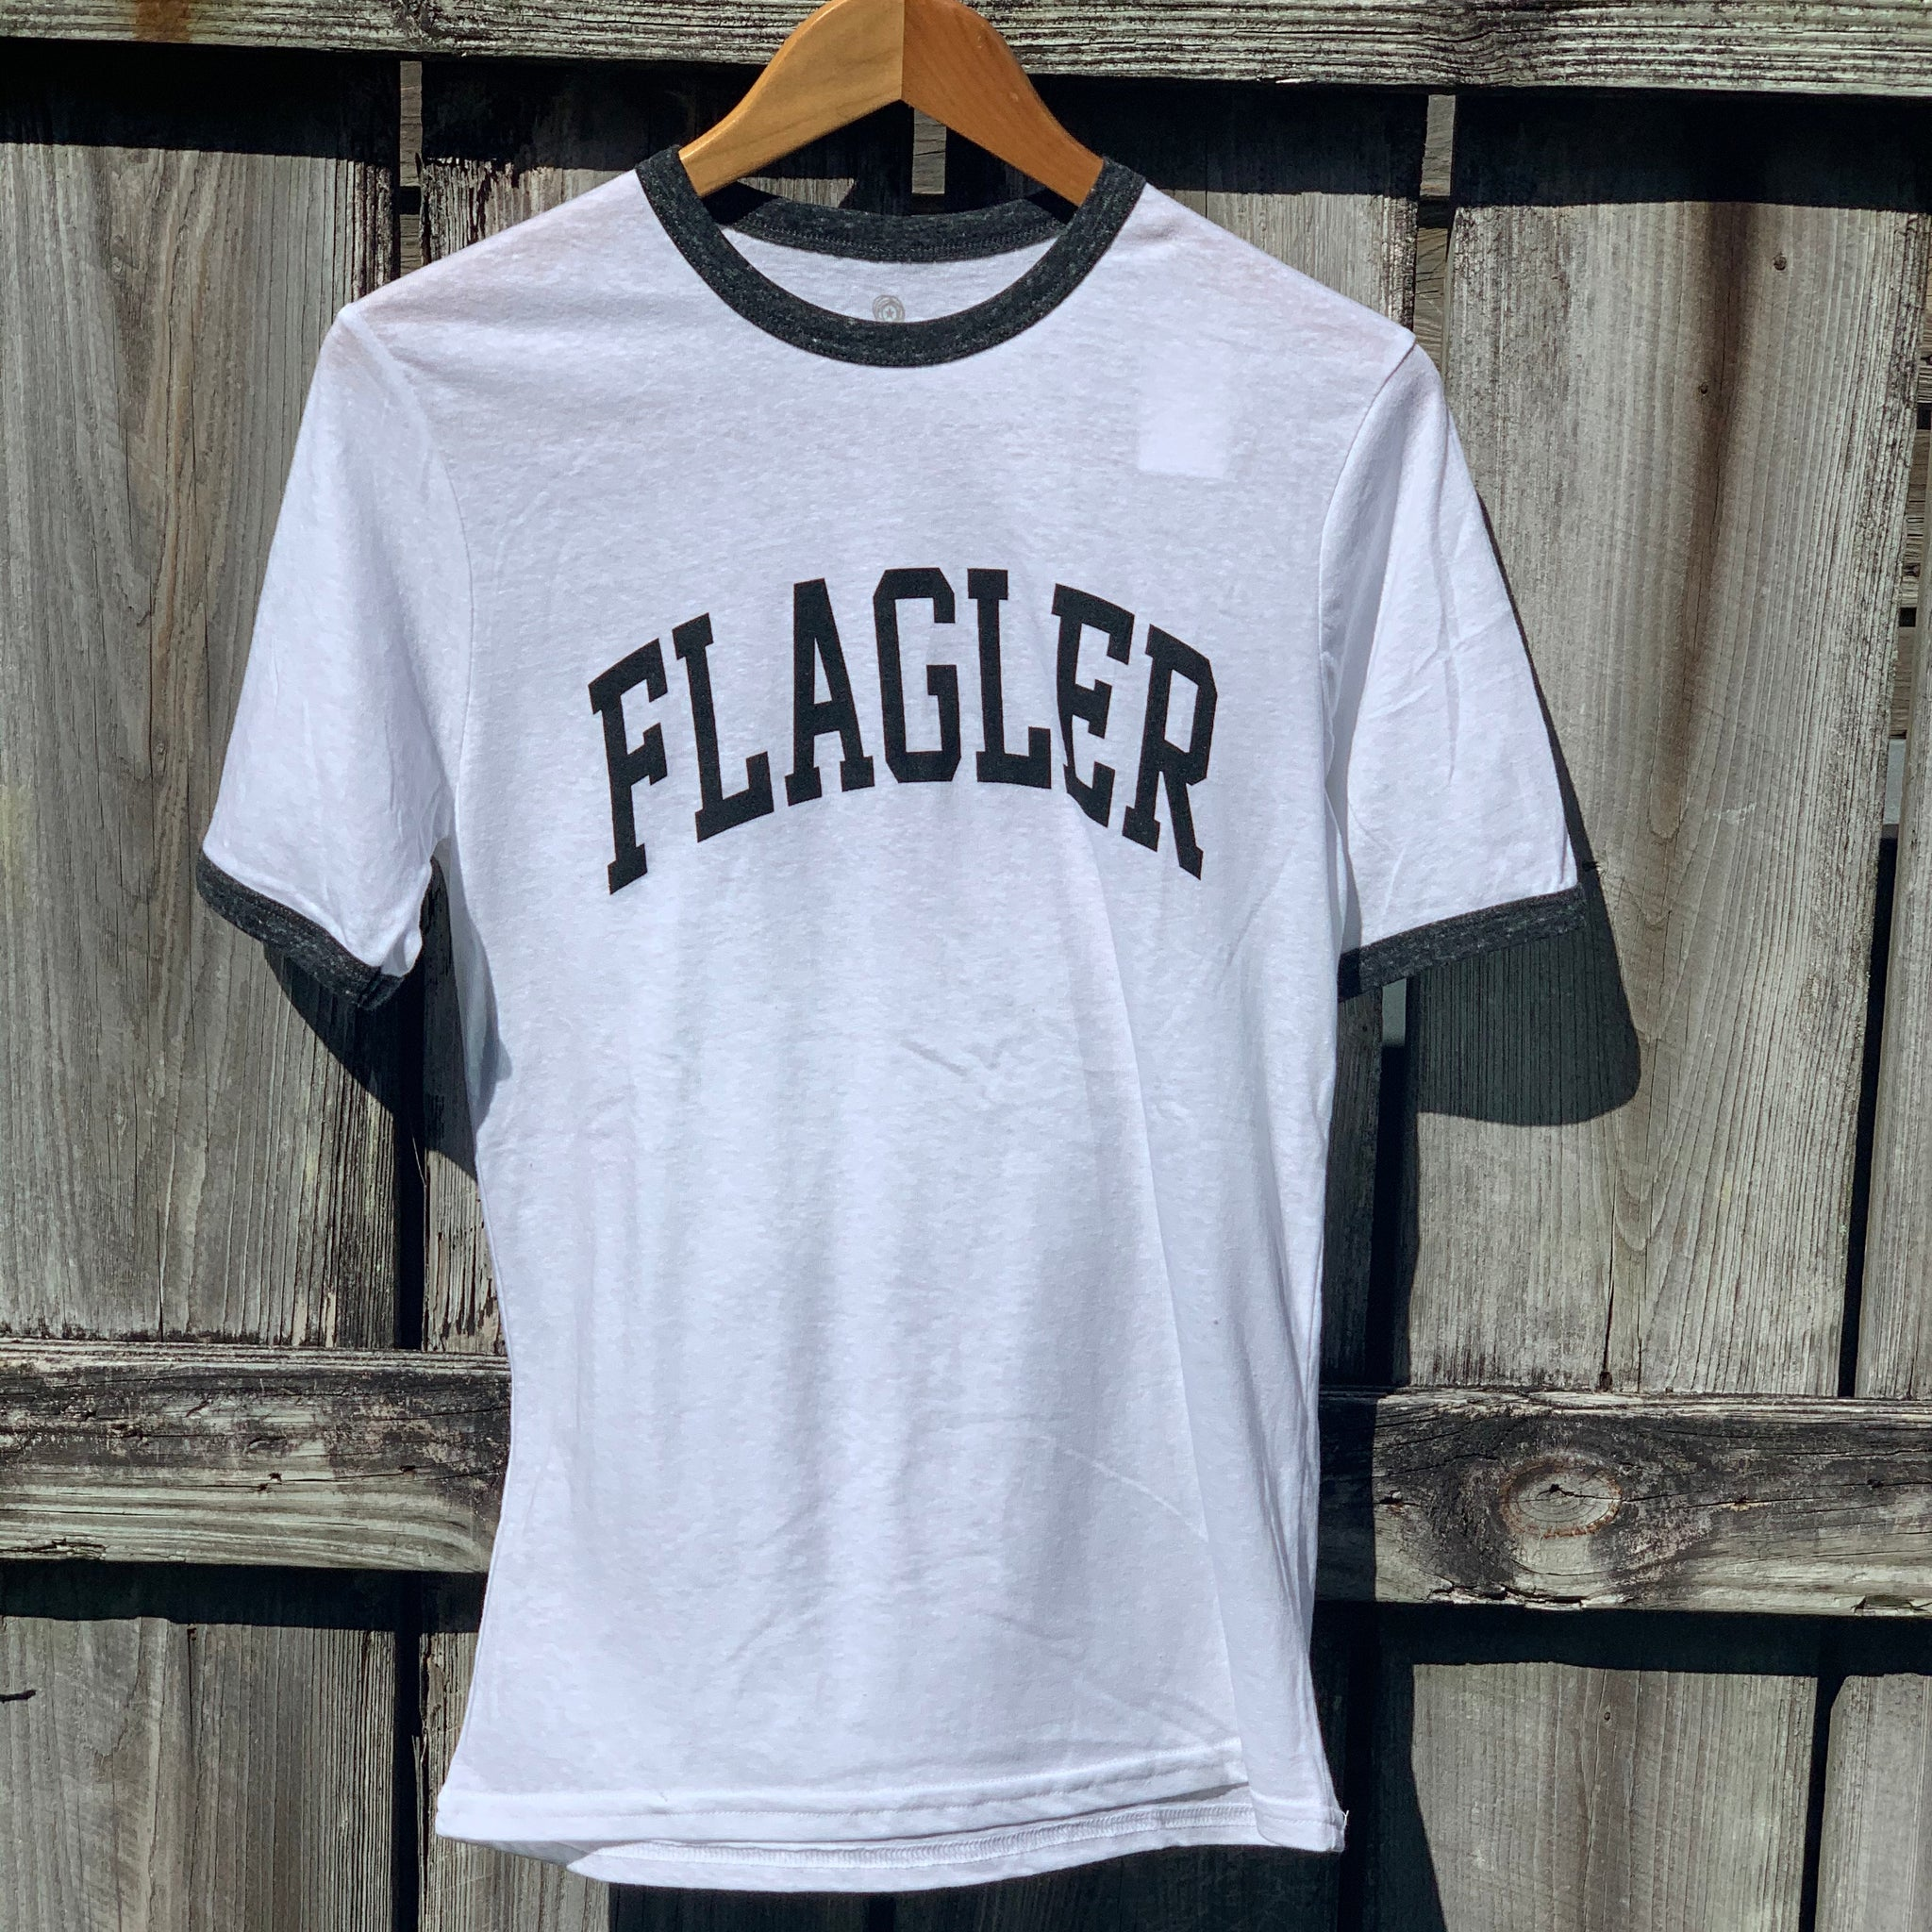 Flagler White and Black Ringer T-Shirt